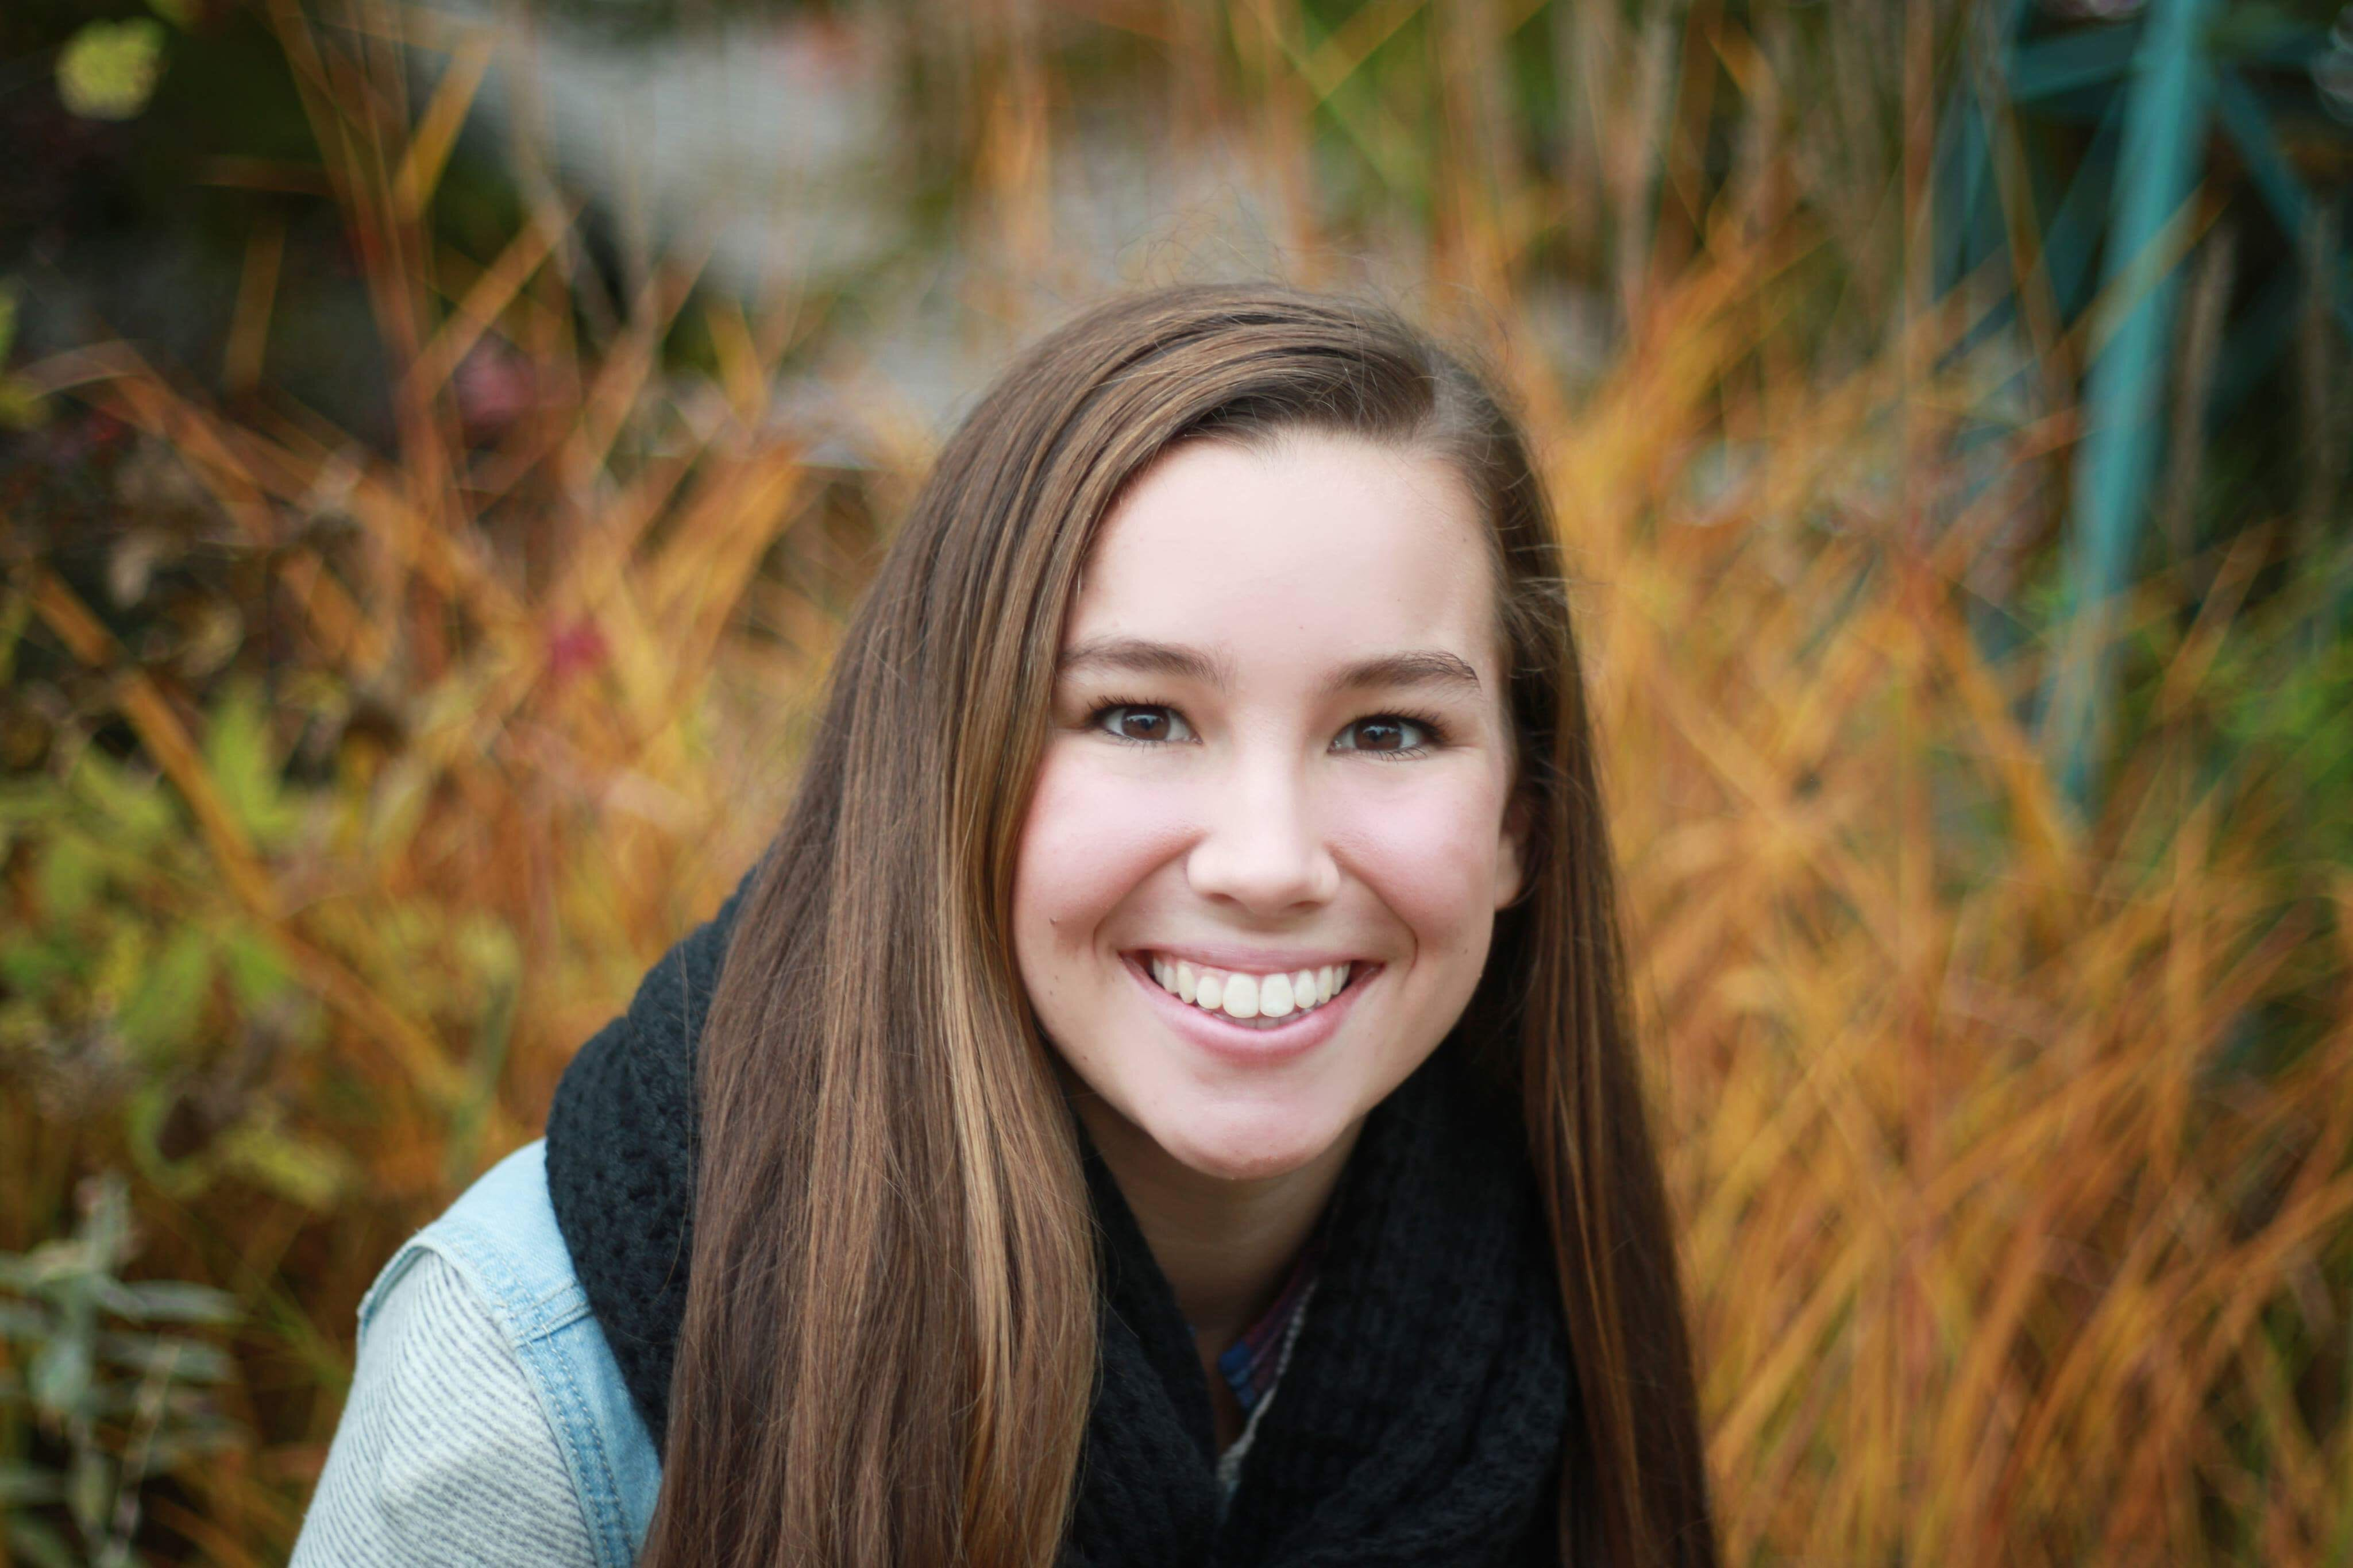 Mollie Tibbetts search: Friend's video shows missing woman day before she disappeared